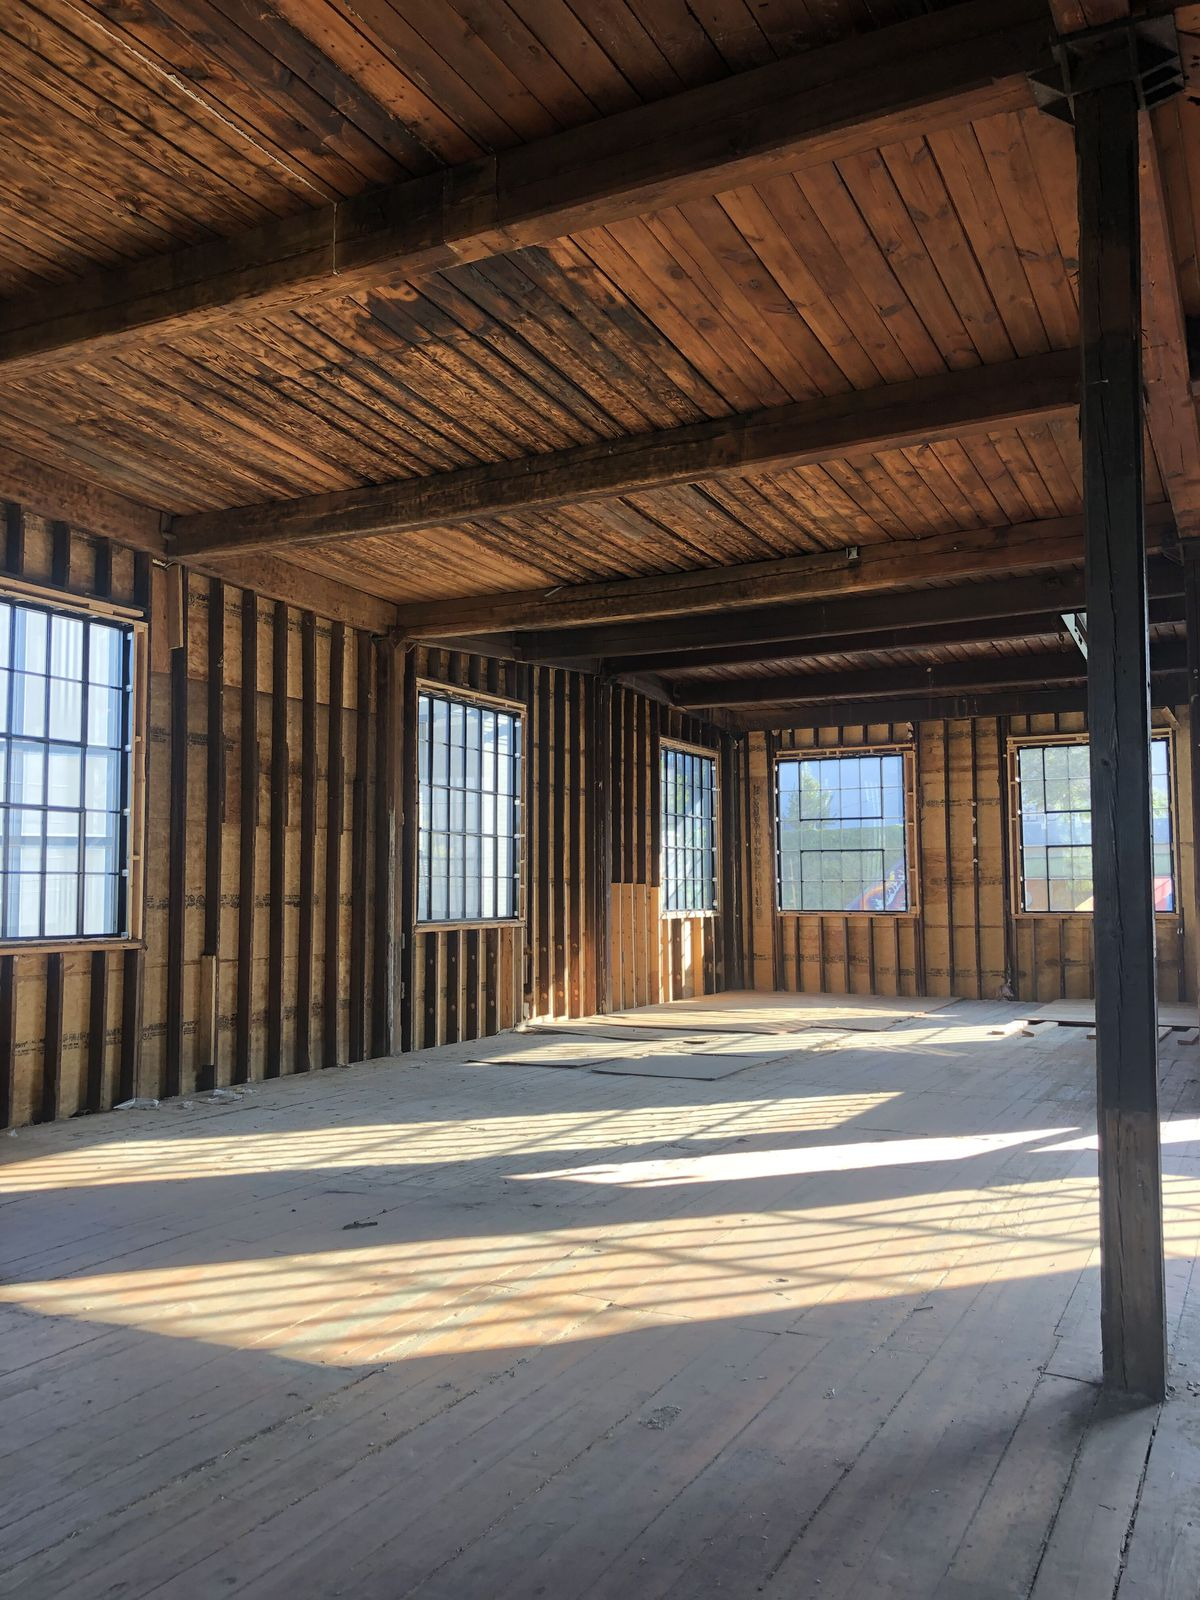 A photo of the building's interior shows old, raw wood and large windows.